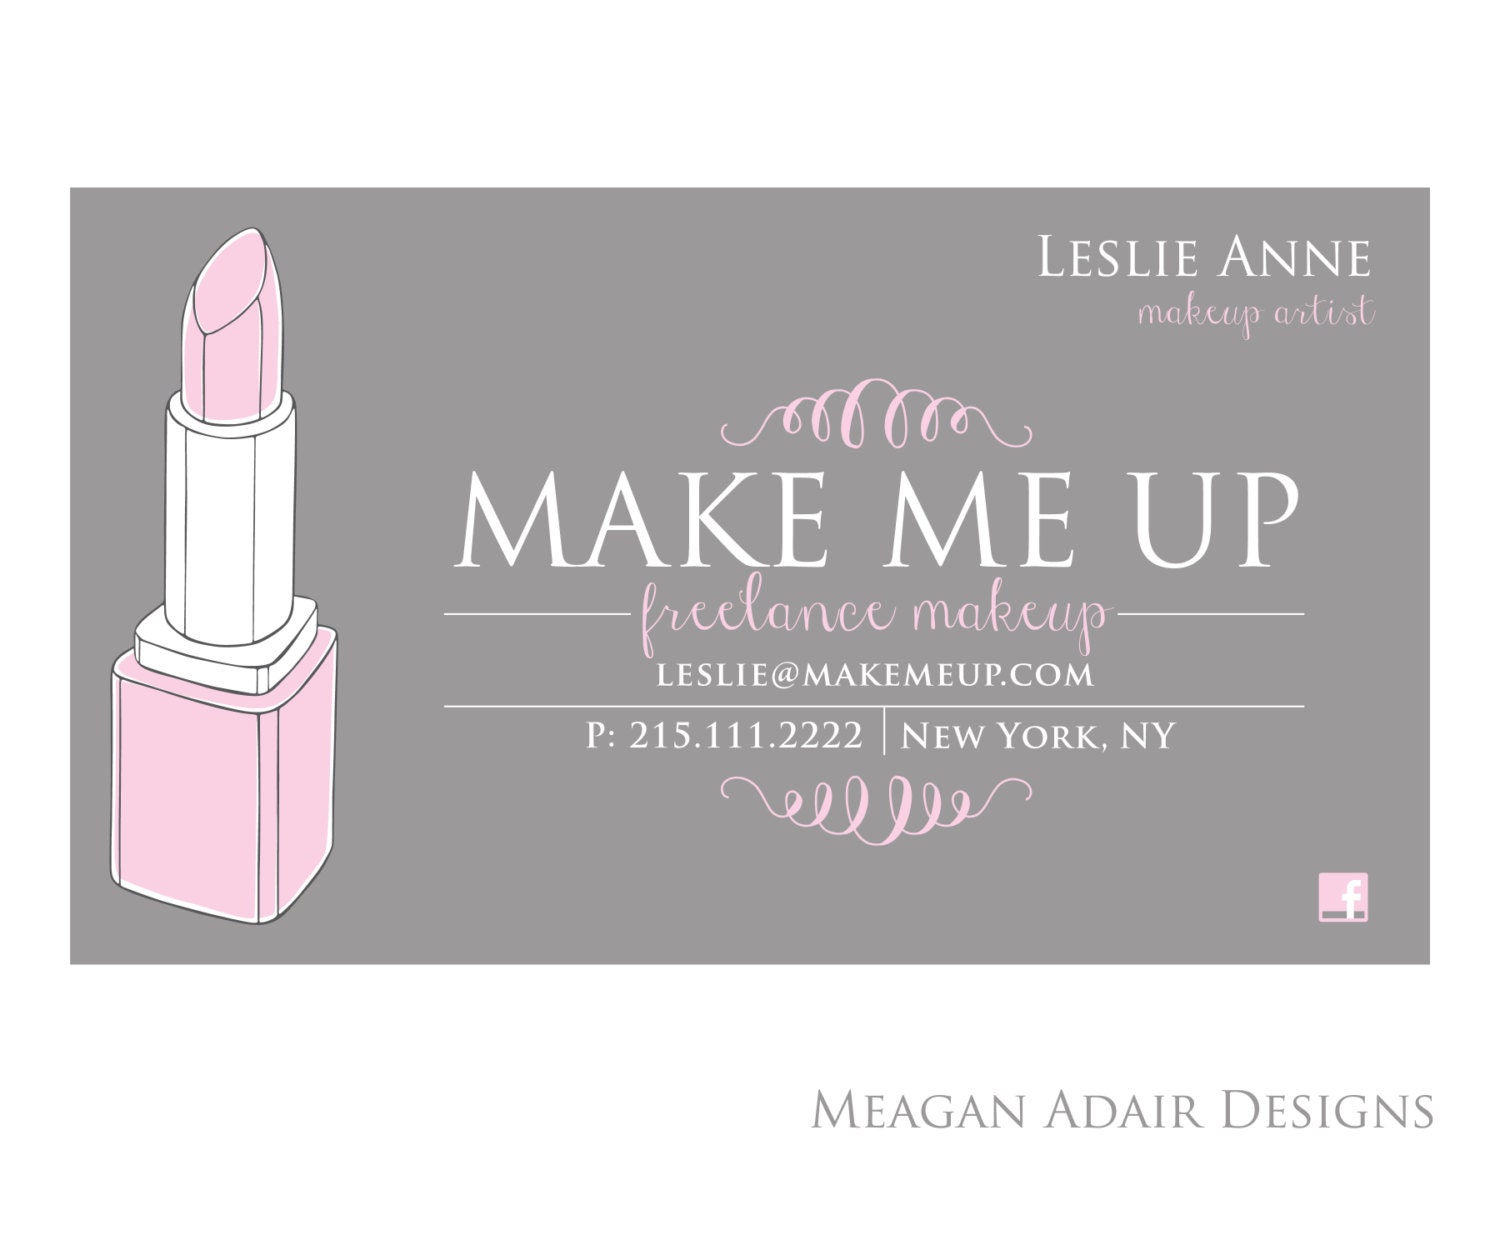 Makeup artist business cards templates business card sample makeup artist business cards ideas wajeb Images